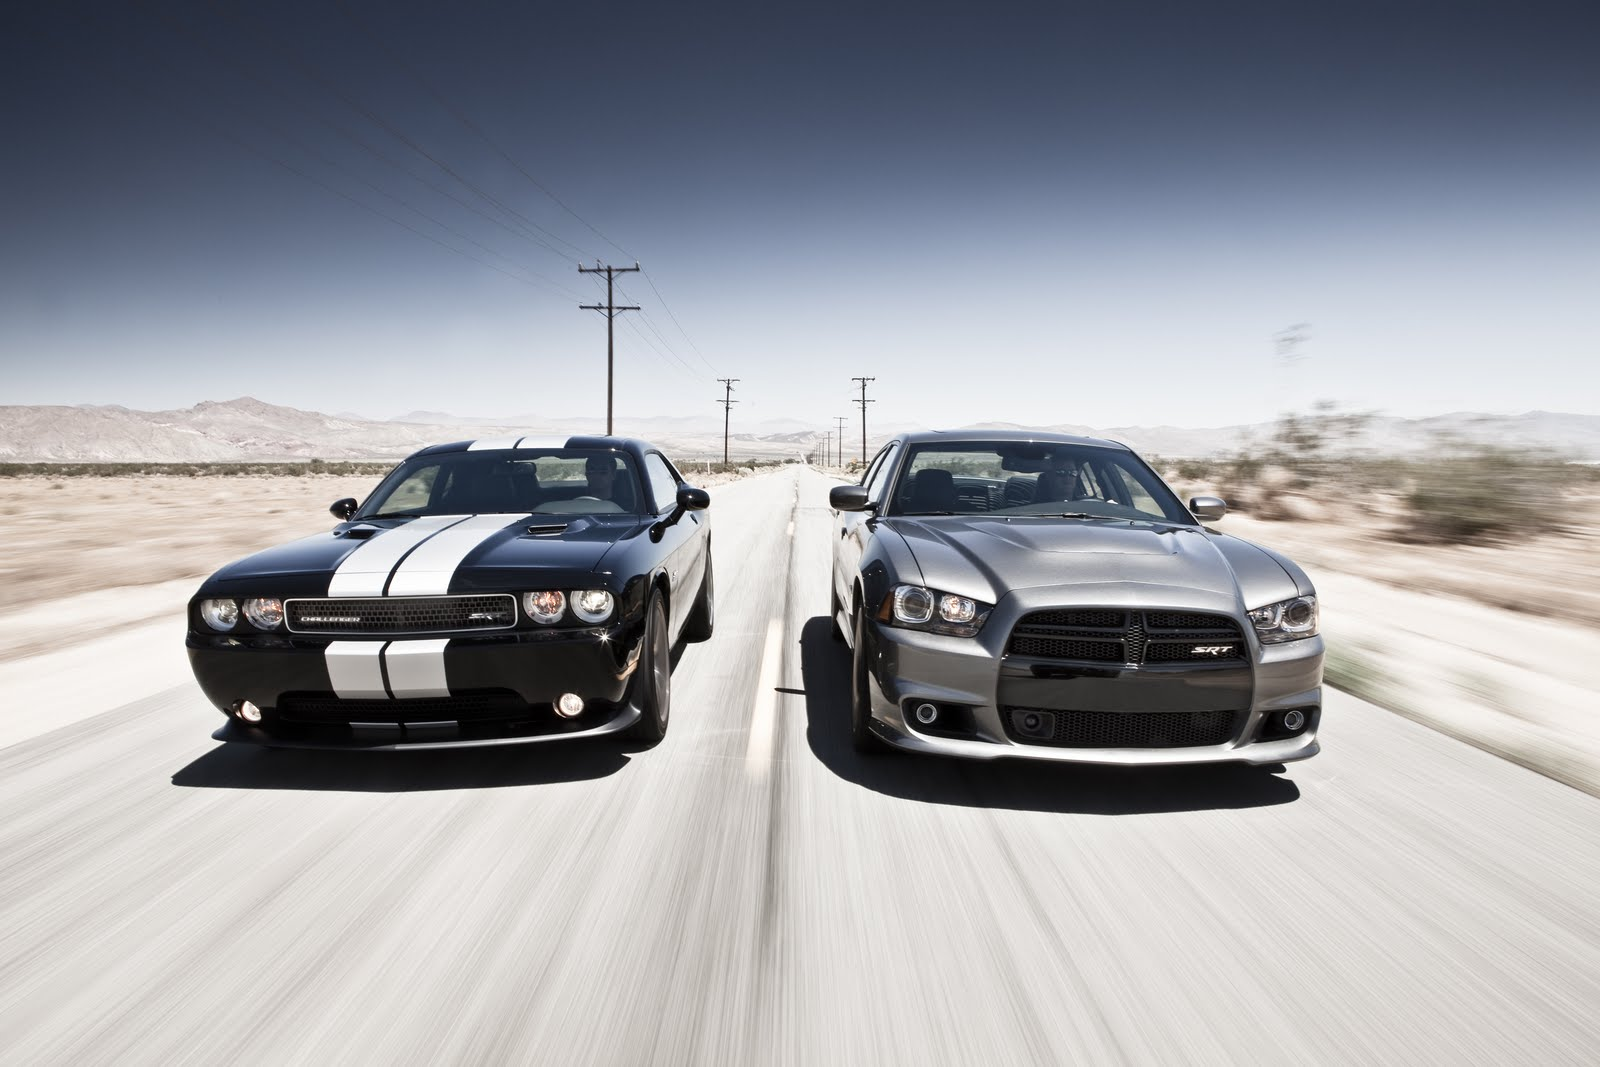 Dodge Charger Srt8 Vs Dodge Challenger Sr8 392 Dark Cars